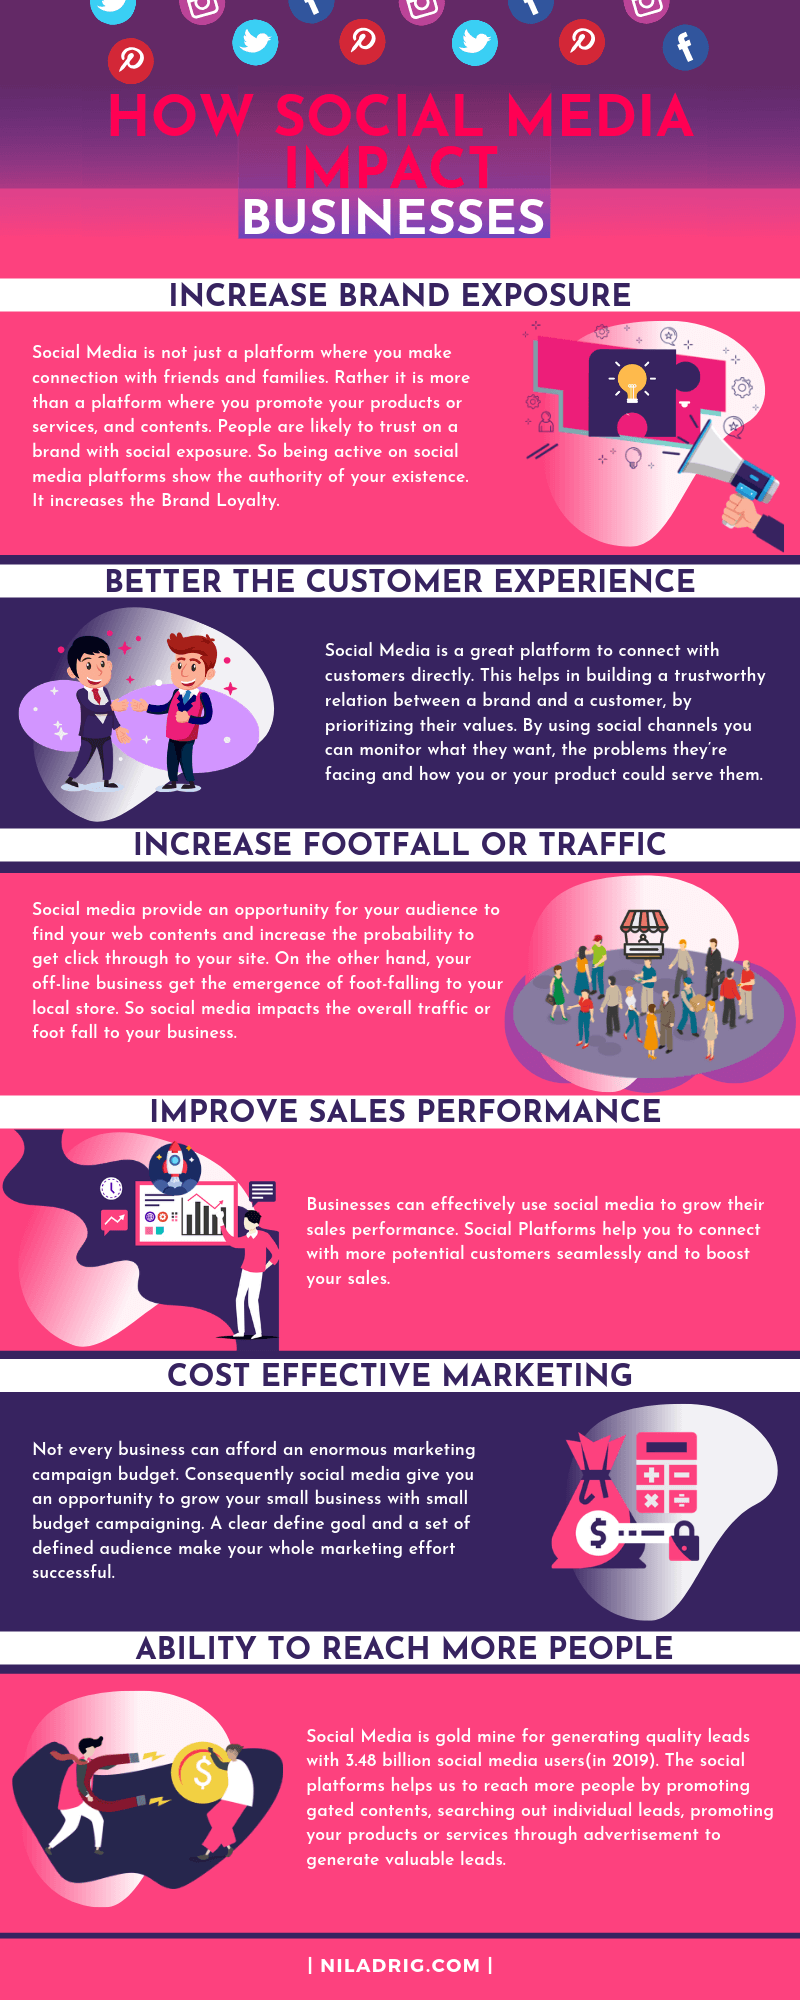 The Benefits of Social Media for Your Business [Infographic]